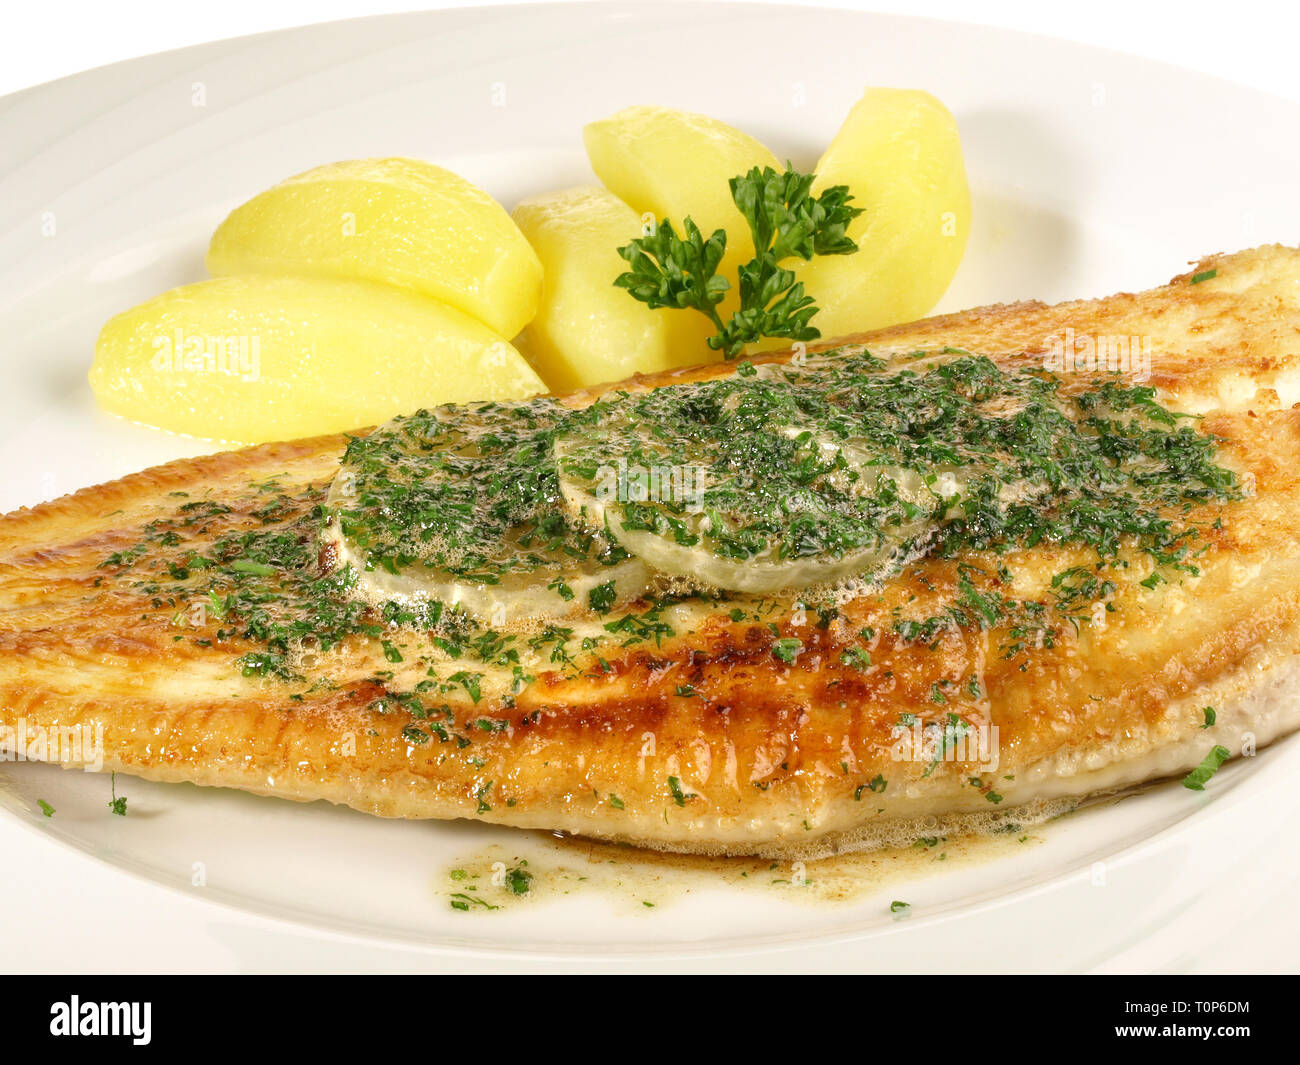 Sole - Flatfish on Withe - Stock Image